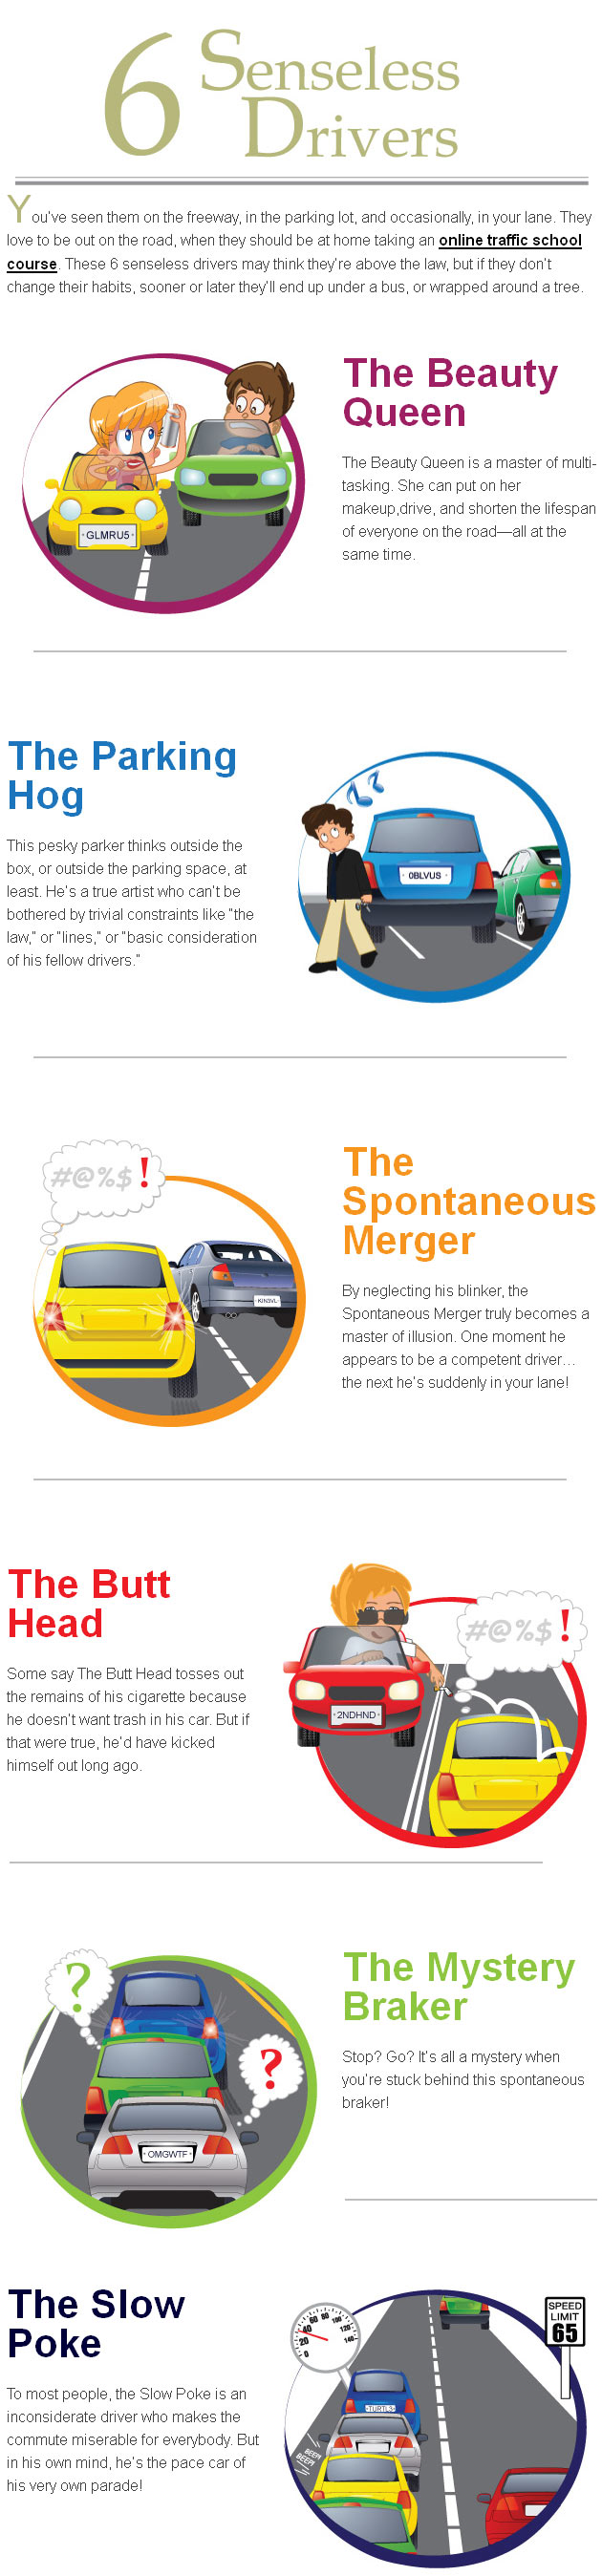 6 Dangerous Drivers-Infographic